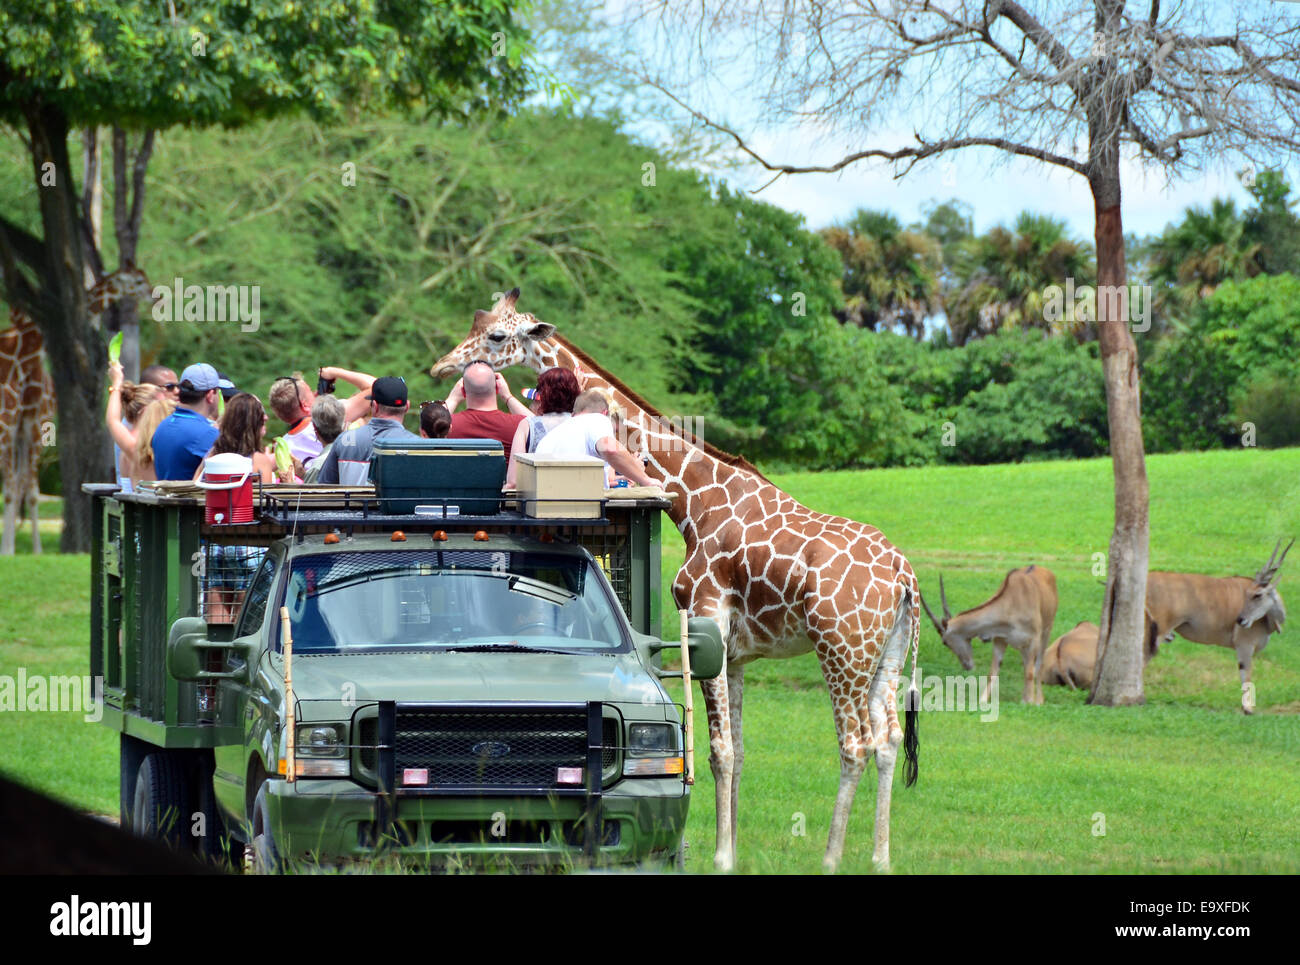 Personable Florida Truck Stock Photos  Florida Truck Stock Images  Alamy With Lovable Visitors Feeding Giraffes From An Open Truck At Busch Gardens Tampa  Florida Usa With Astounding The Kitchen Garden Also Garden Umbrella Covers In Addition Draper Garden Shredder And Jo Gardener As Well As Carr Hall Garden Centre Additionally Pots For Herb Garden From Alamycom With   Lovable Florida Truck Stock Photos  Florida Truck Stock Images  Alamy With Astounding Visitors Feeding Giraffes From An Open Truck At Busch Gardens Tampa  Florida Usa And Personable The Kitchen Garden Also Garden Umbrella Covers In Addition Draper Garden Shredder From Alamycom